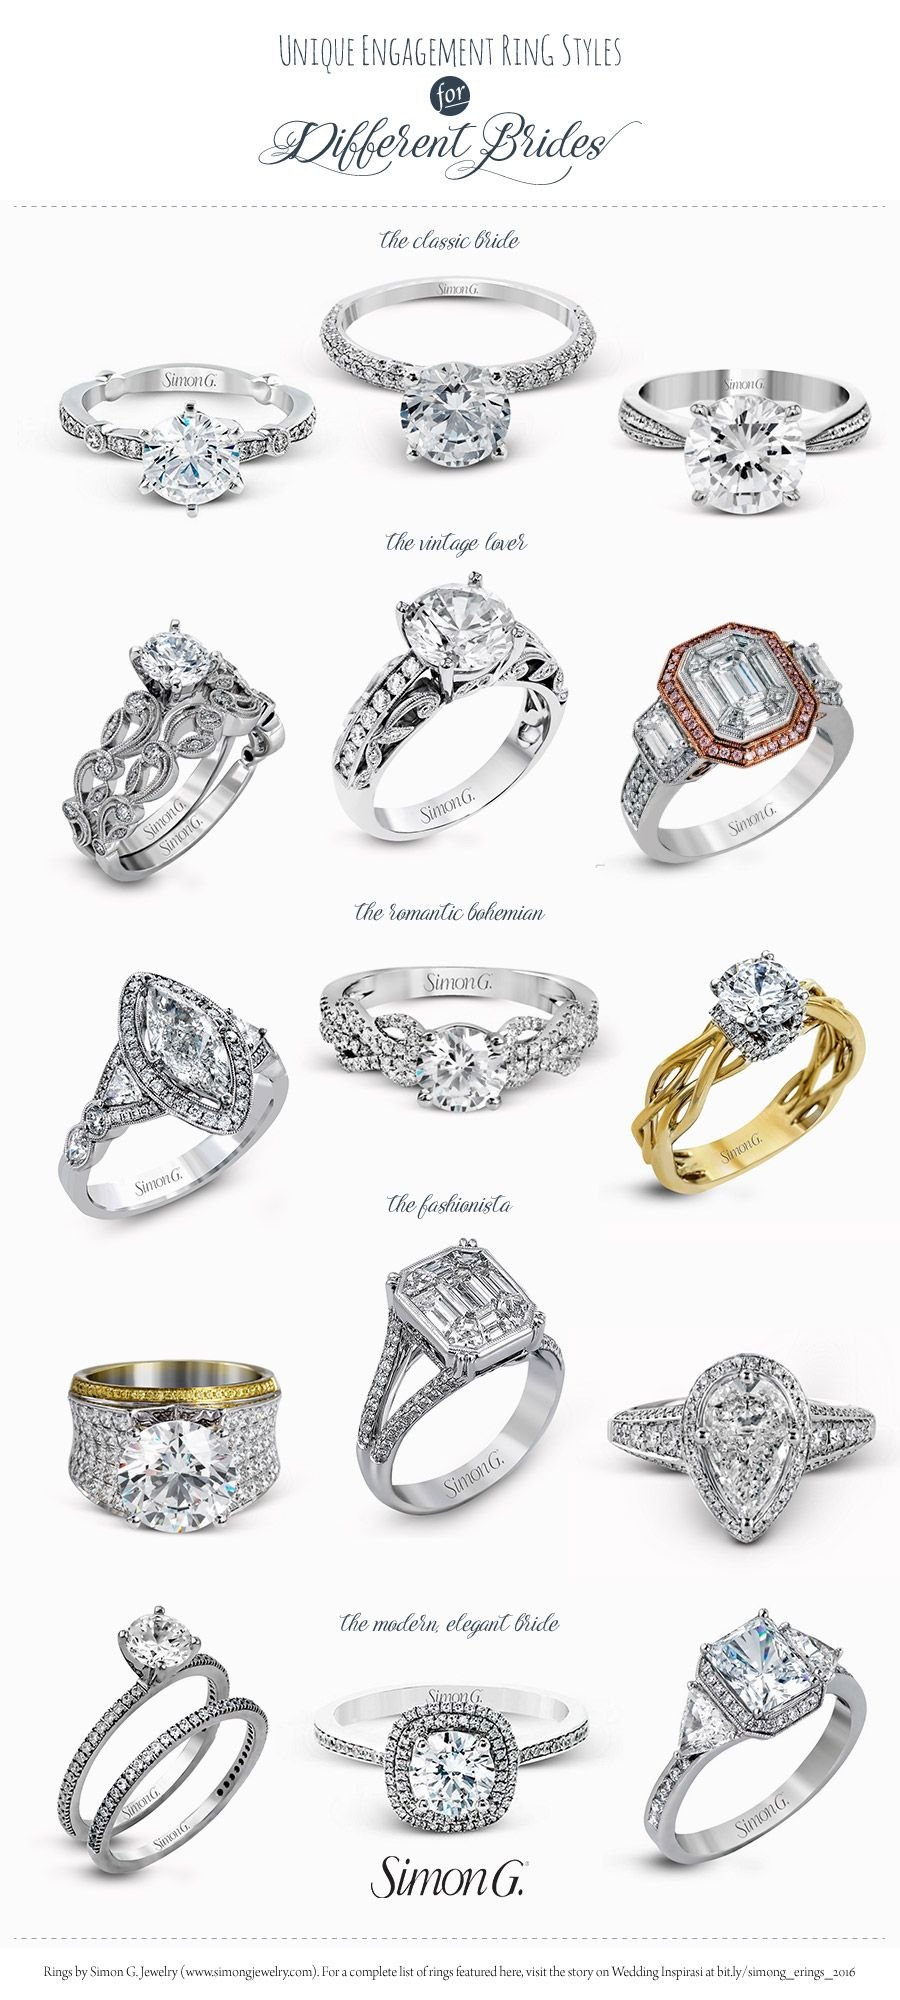 Simon g engagement ring styles for every bride bridal for Types of body jewelry rings